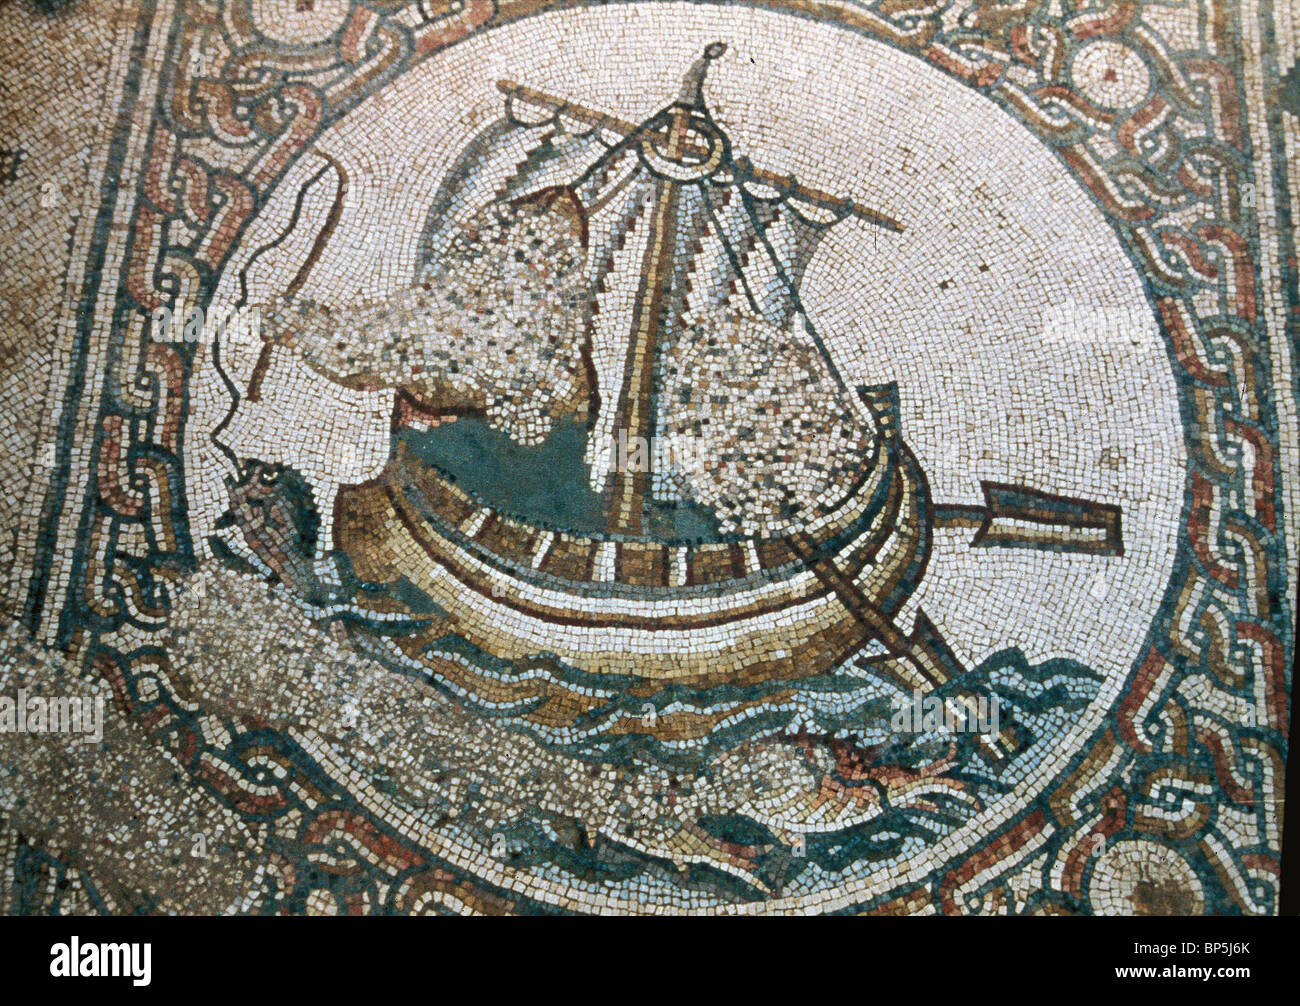 MOSAIC FROM THE FLOOR OF THE 5TH. C. BYZANTINE CHURCH AT BETH LOYA LOCATED IN THE SOUTHERN FOOTHILLS OF JUDEA. THE - Stock Image